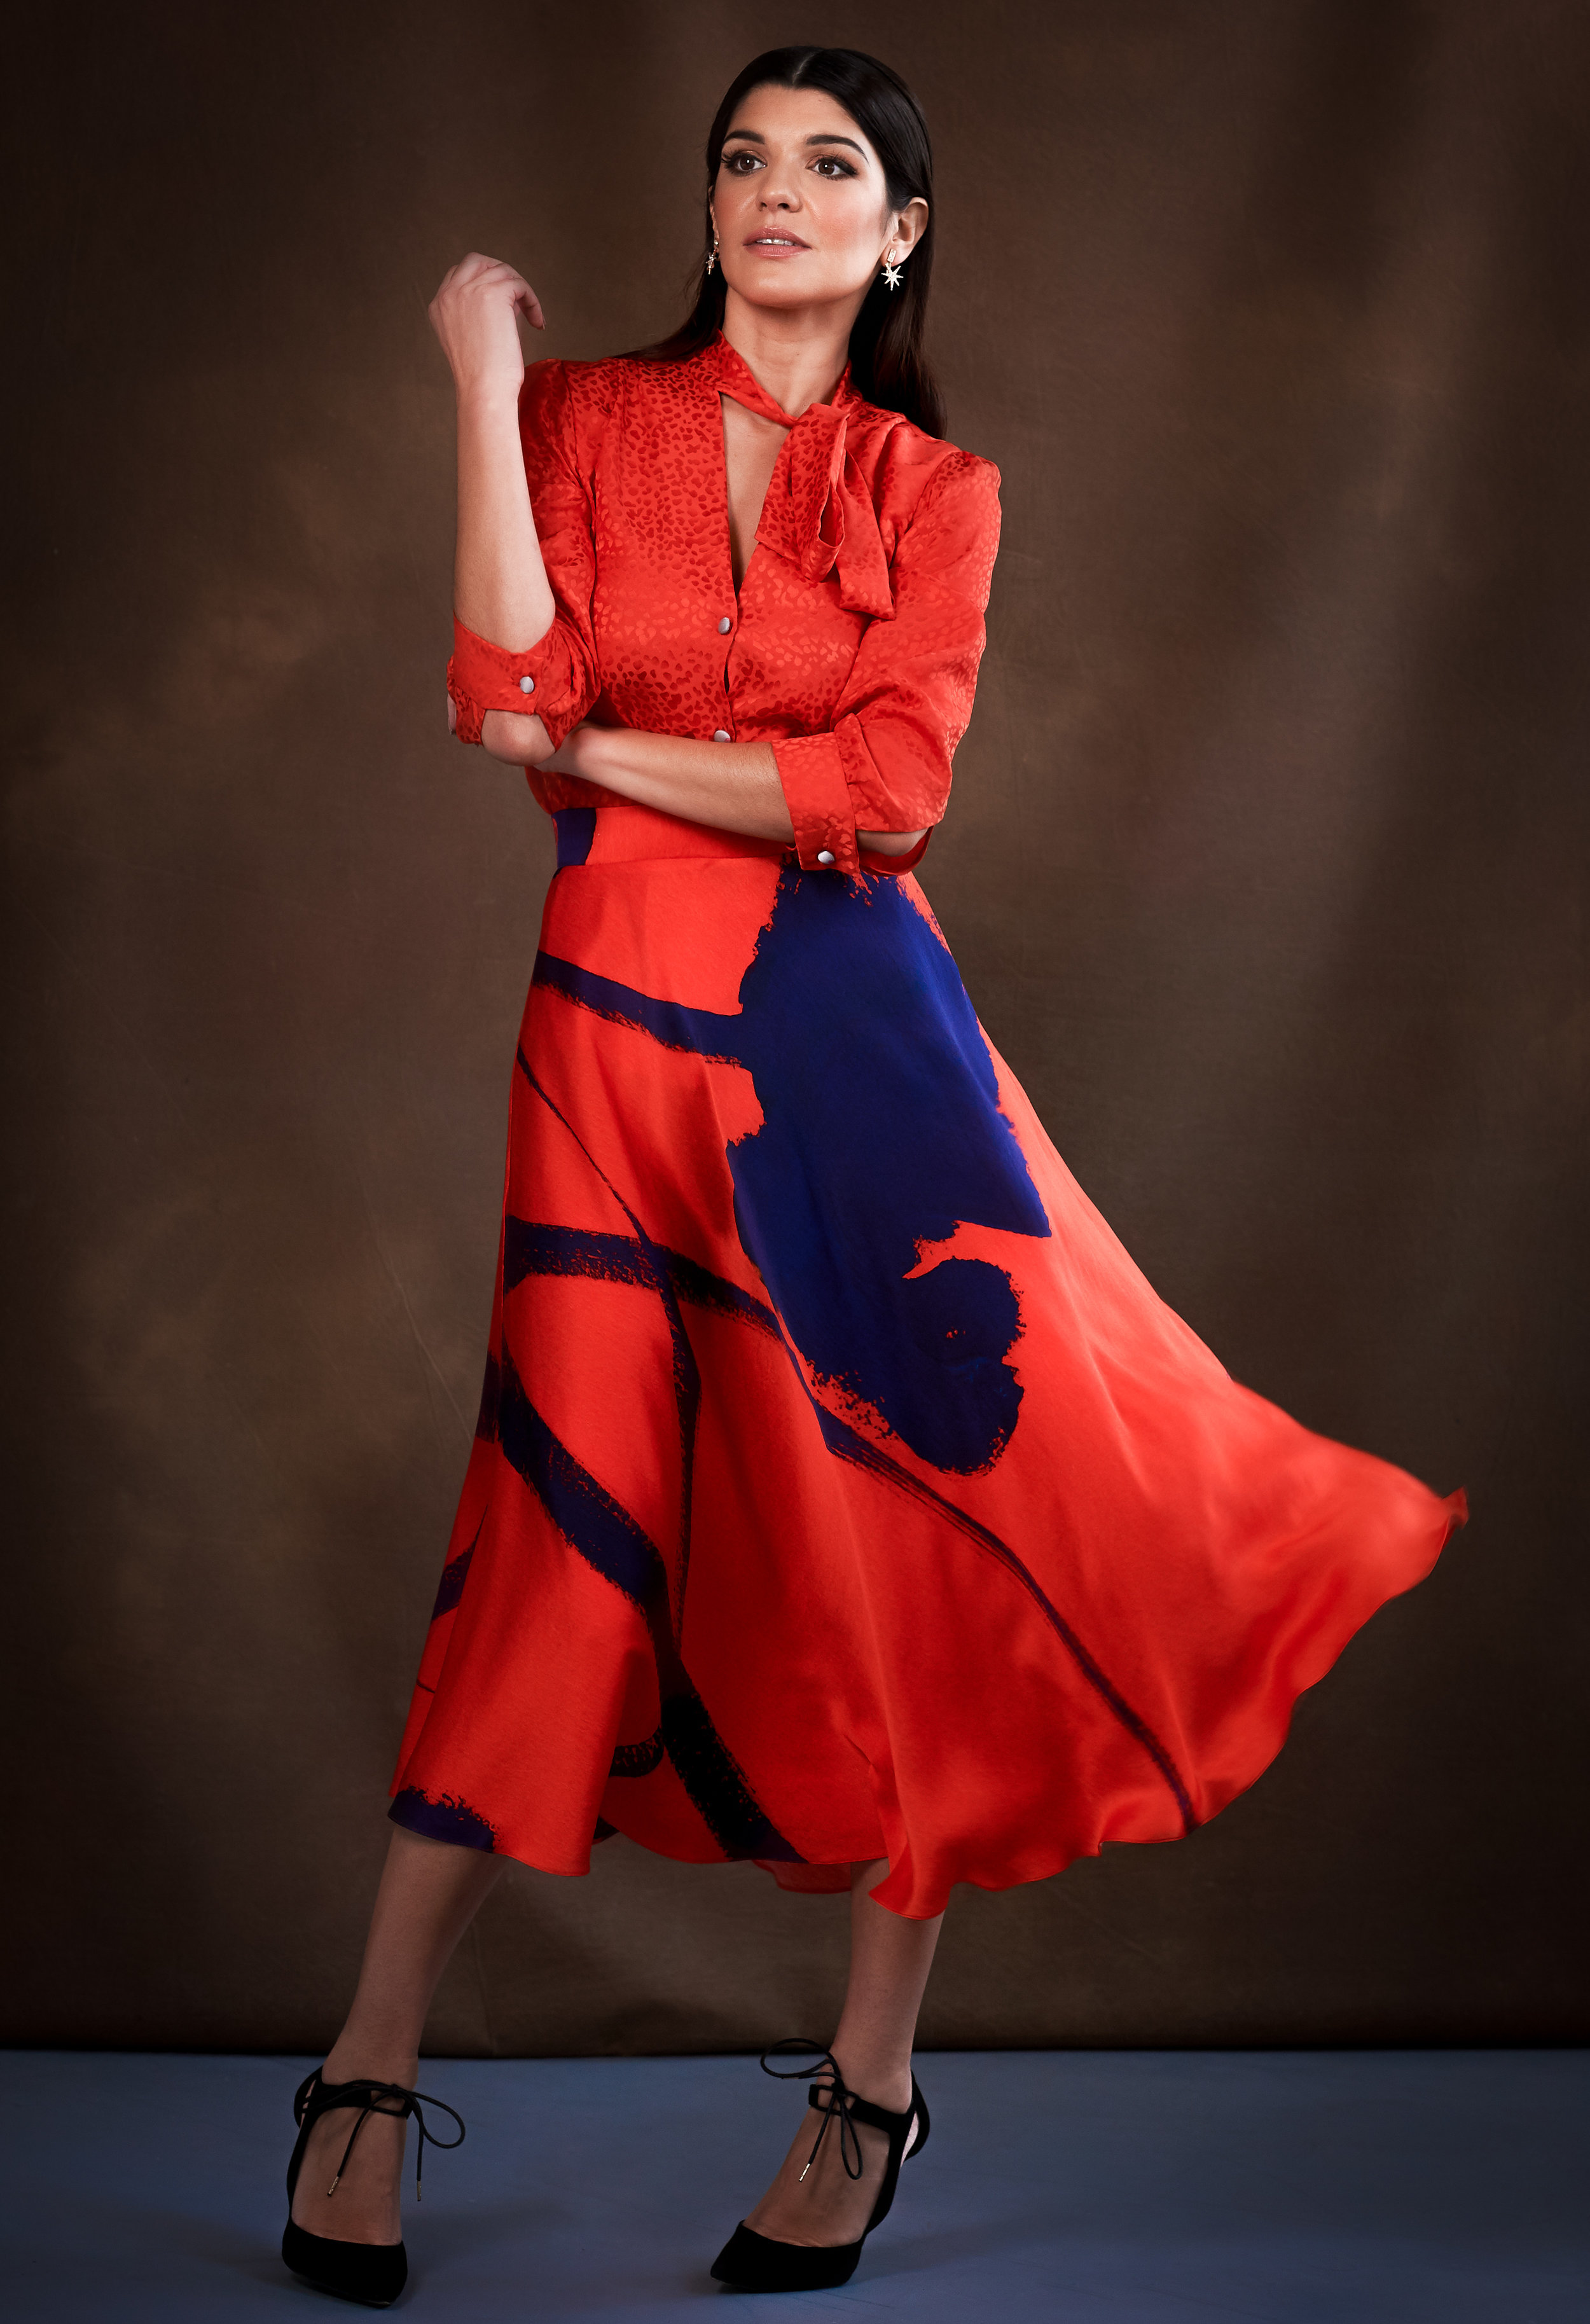 London Fashion Designer Ellie Lines' red silk Maddie blouse and Dora skirt